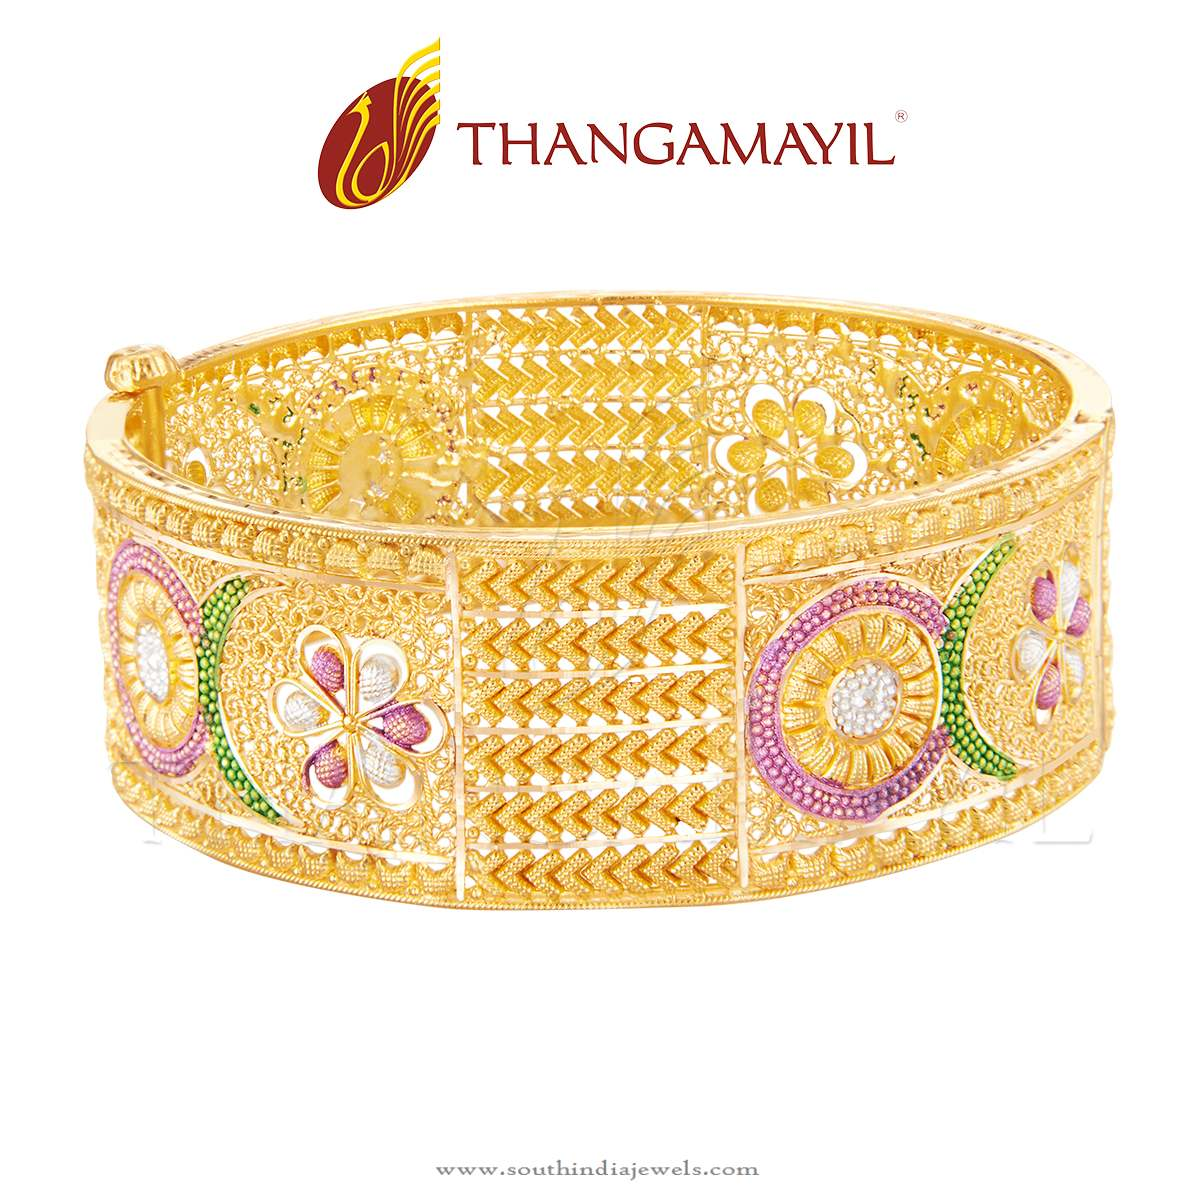 Big Bridal Gold Bangle From Thangamayil Jewellery ~ South India Jewels